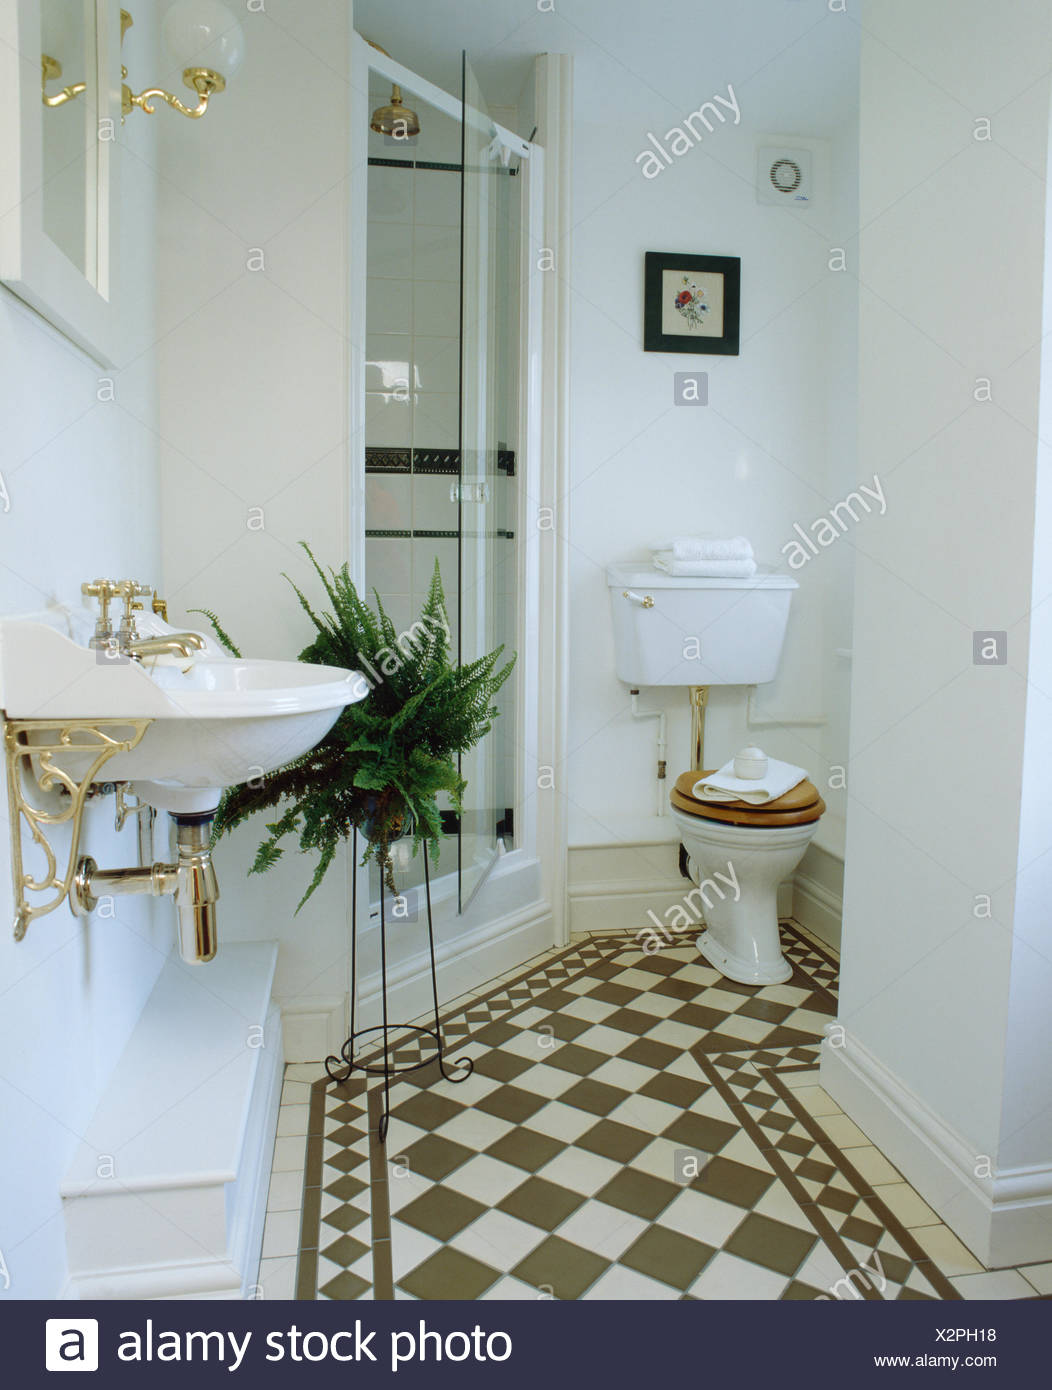 Black+white chequerboard flooring in white bathroom with Boston fern on stand beside glass shower doors - Stock Image